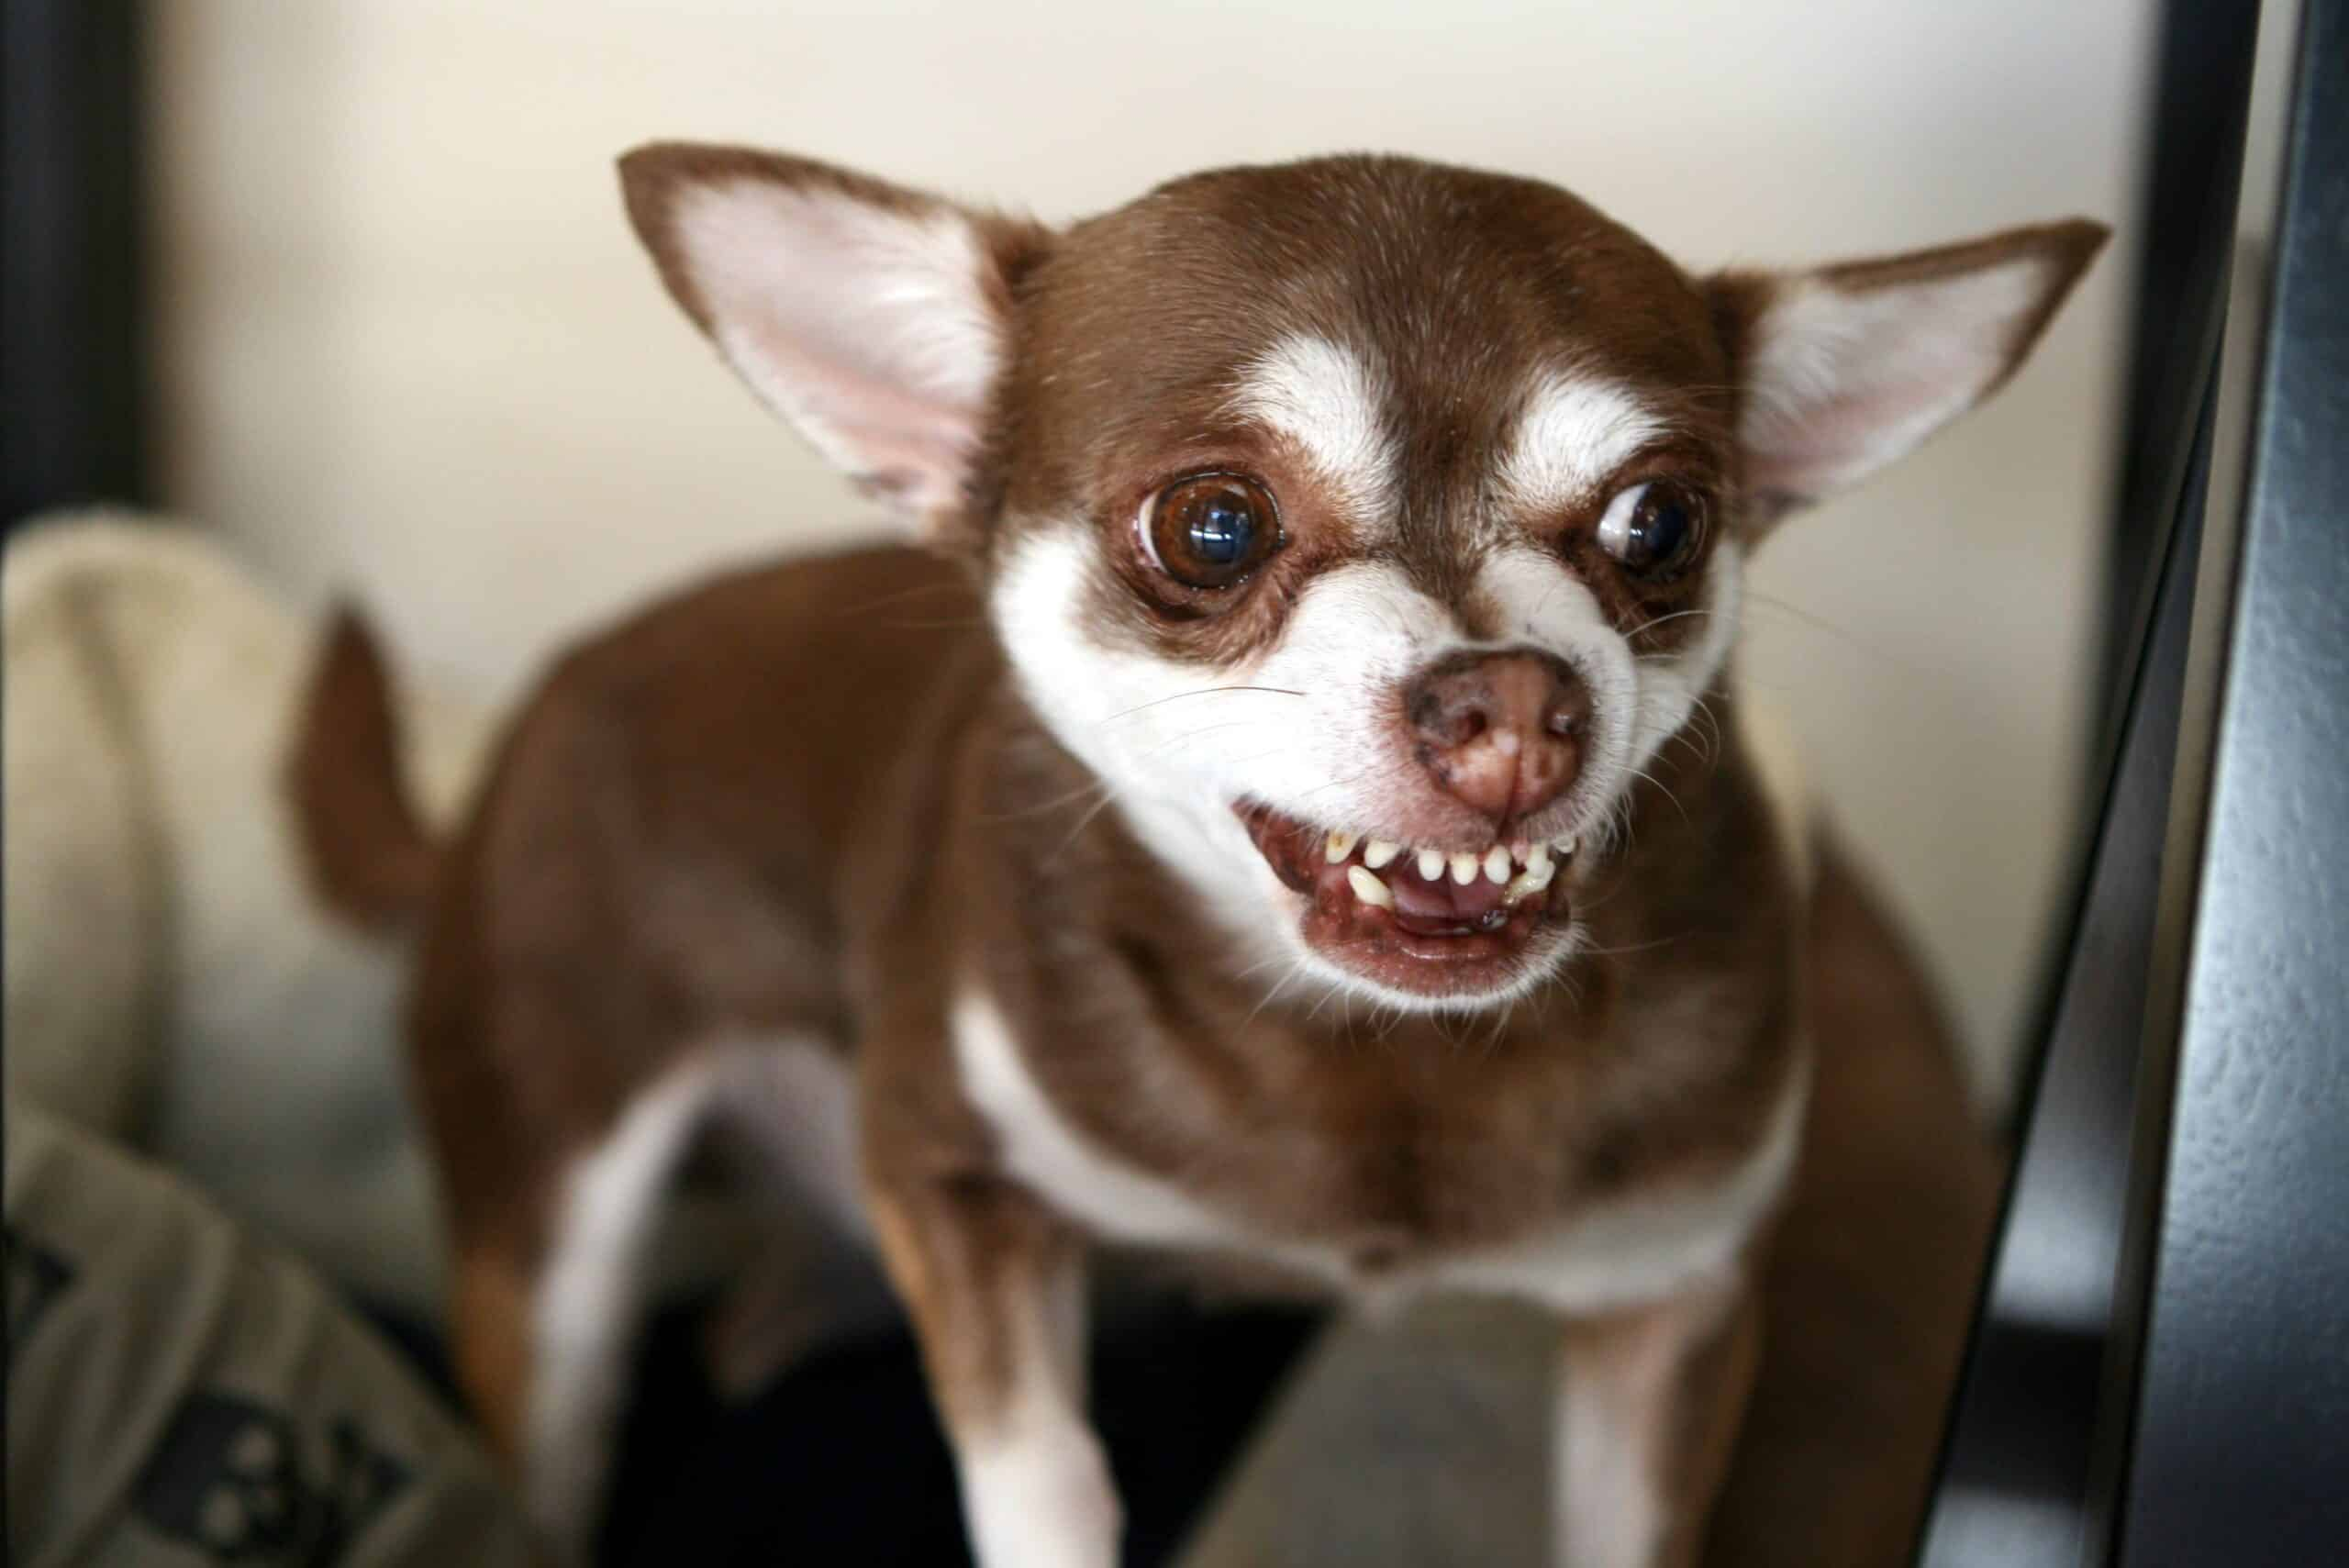 Dog Acting Strange After Teeth Cleaning